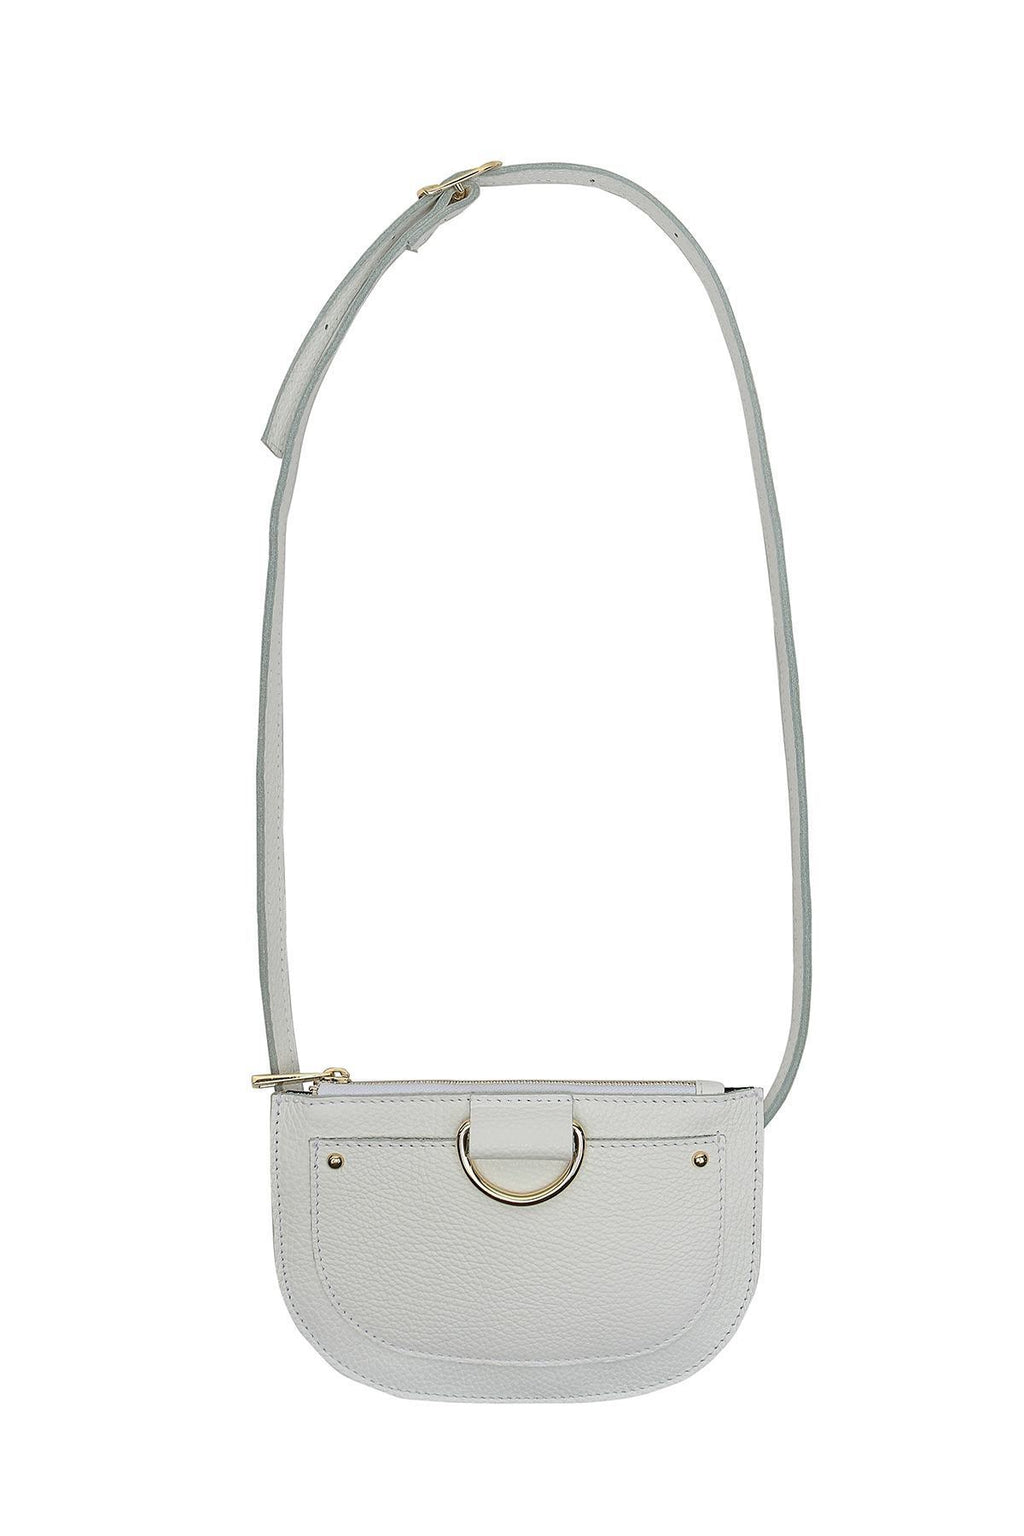 Cherry Paris - Grace bum bag white